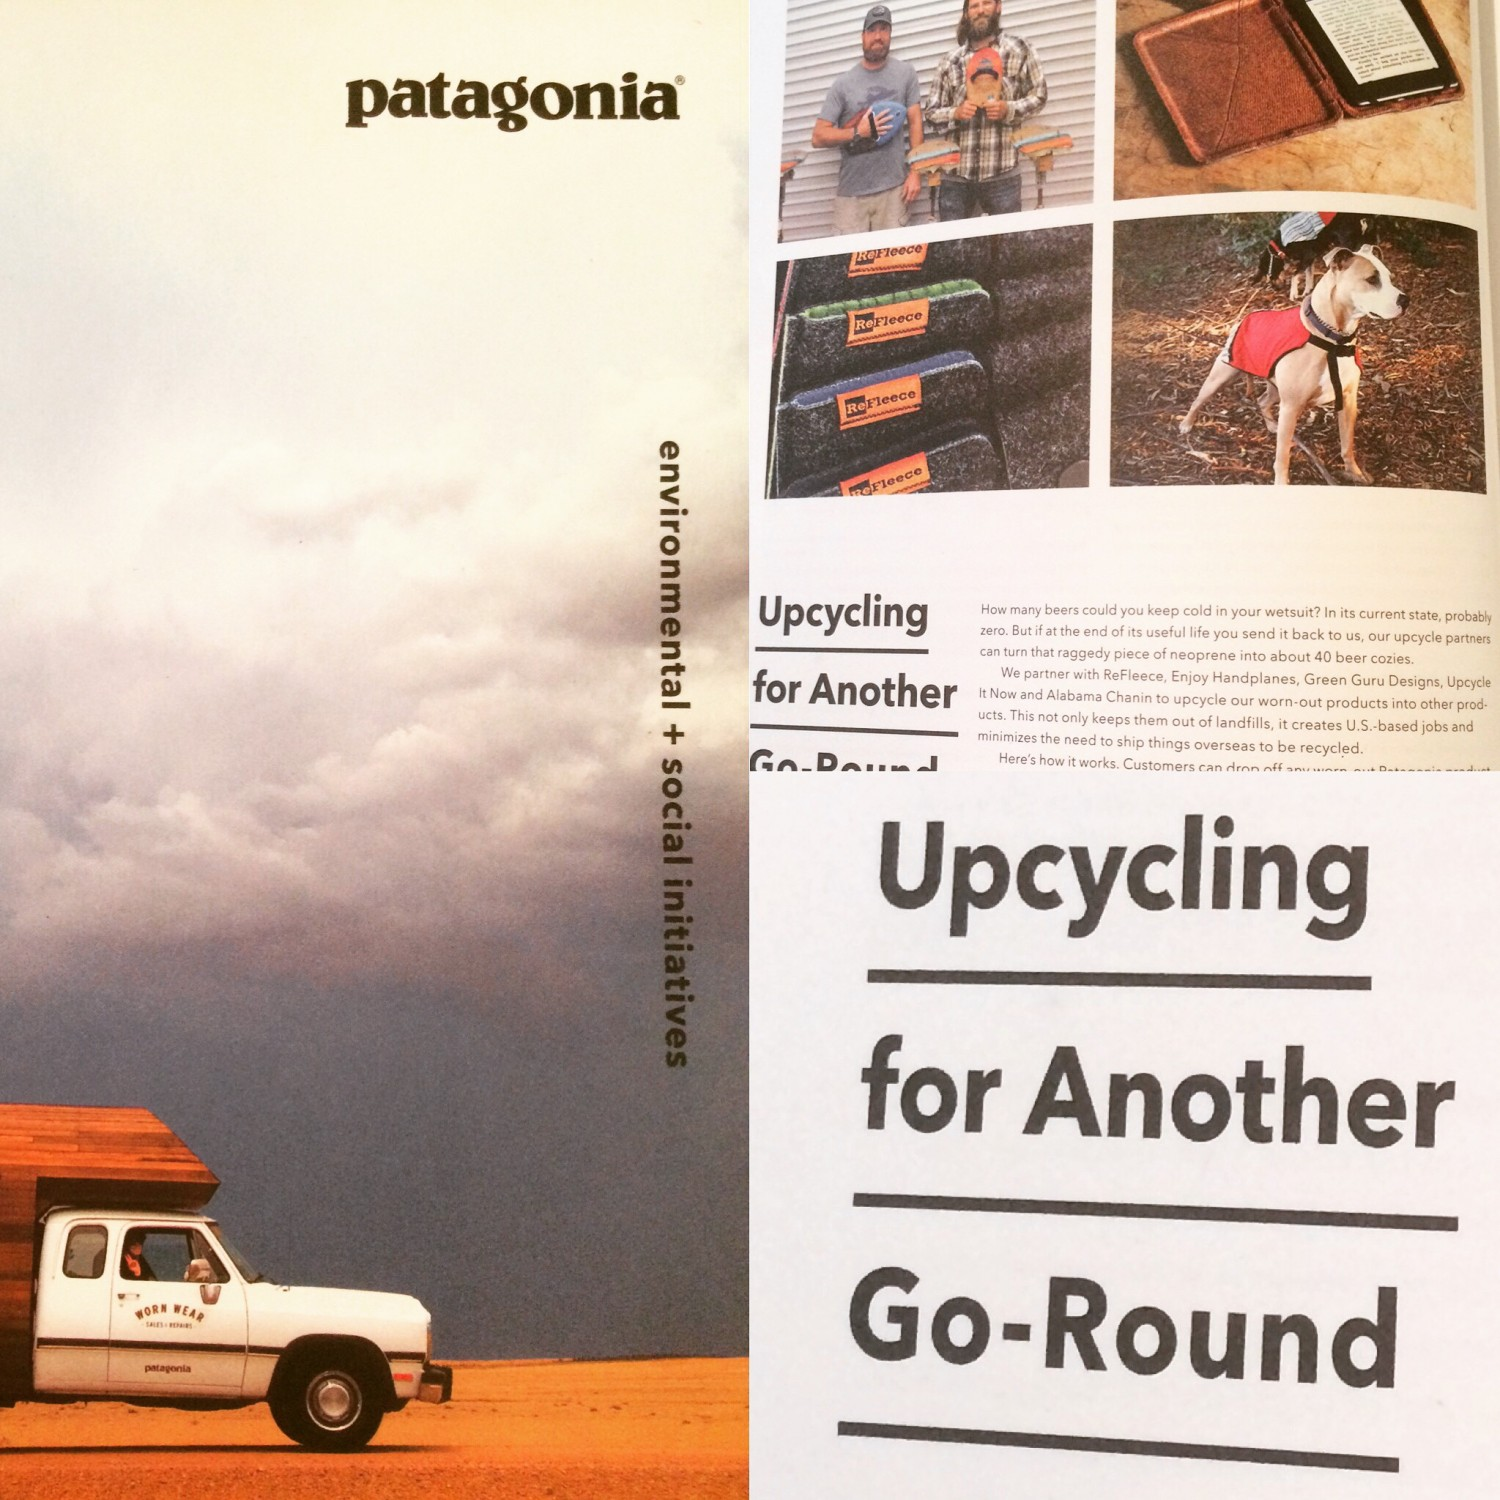 Patagonia Environmental + Social Initiatives 2015